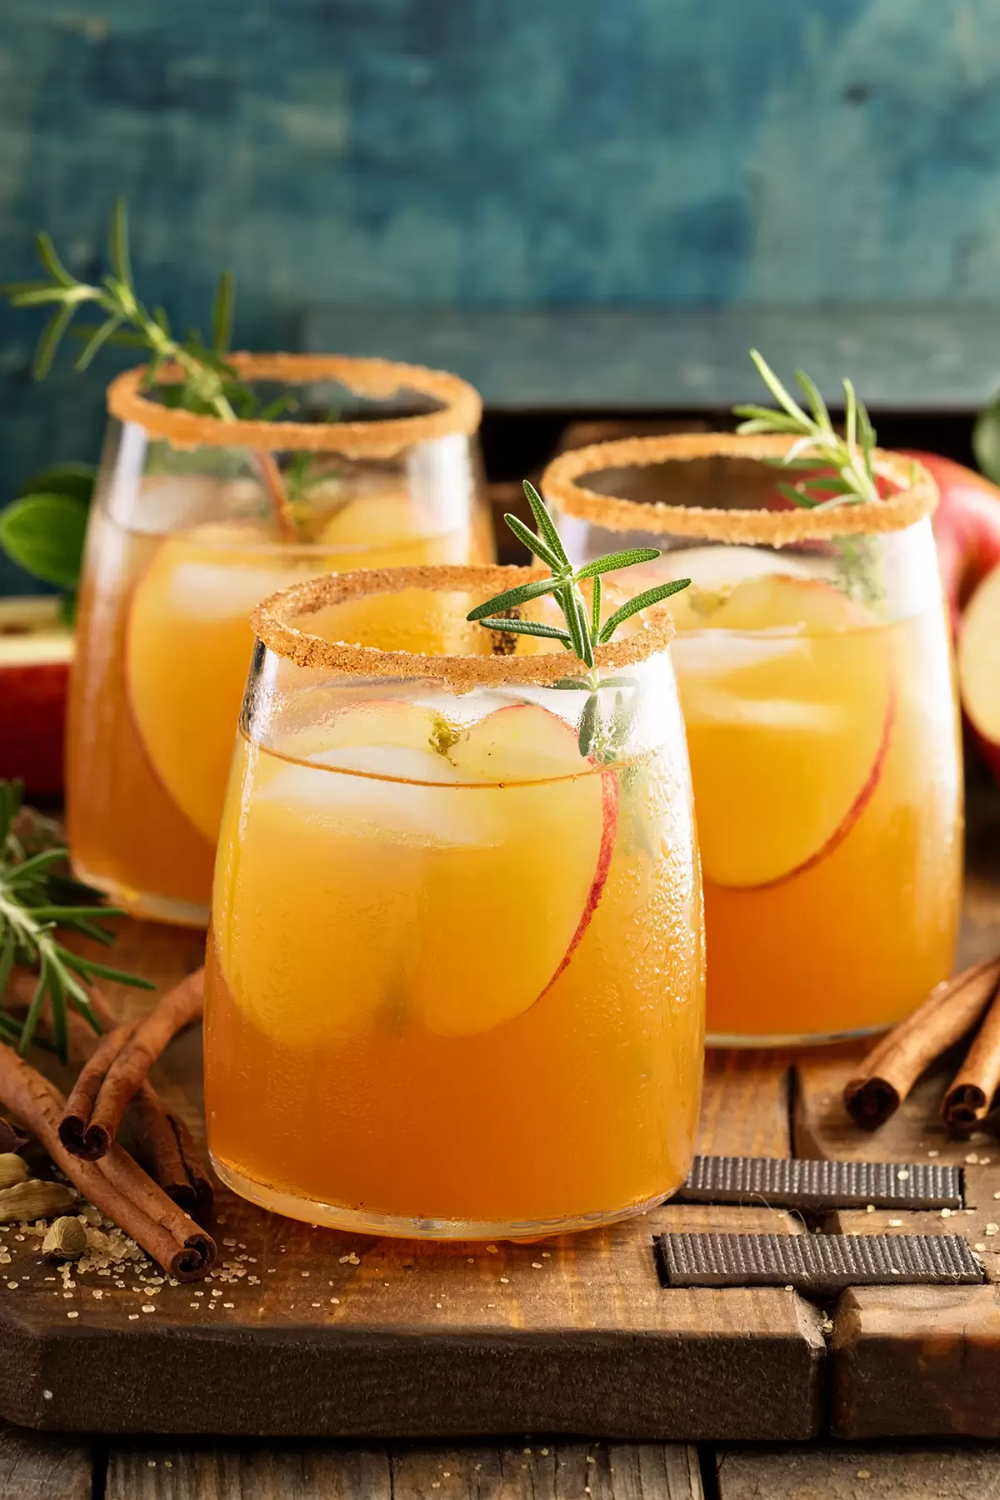 Make this delicious Caramel apple cider sangria drink for fall! Alcoholic cocktail is as delicious as it is stunning for adult parties. #apple #applerecipes #appledrinks #fall #fallrecipes #falldrinks #sangria #applesangria #applecider #craftymorning